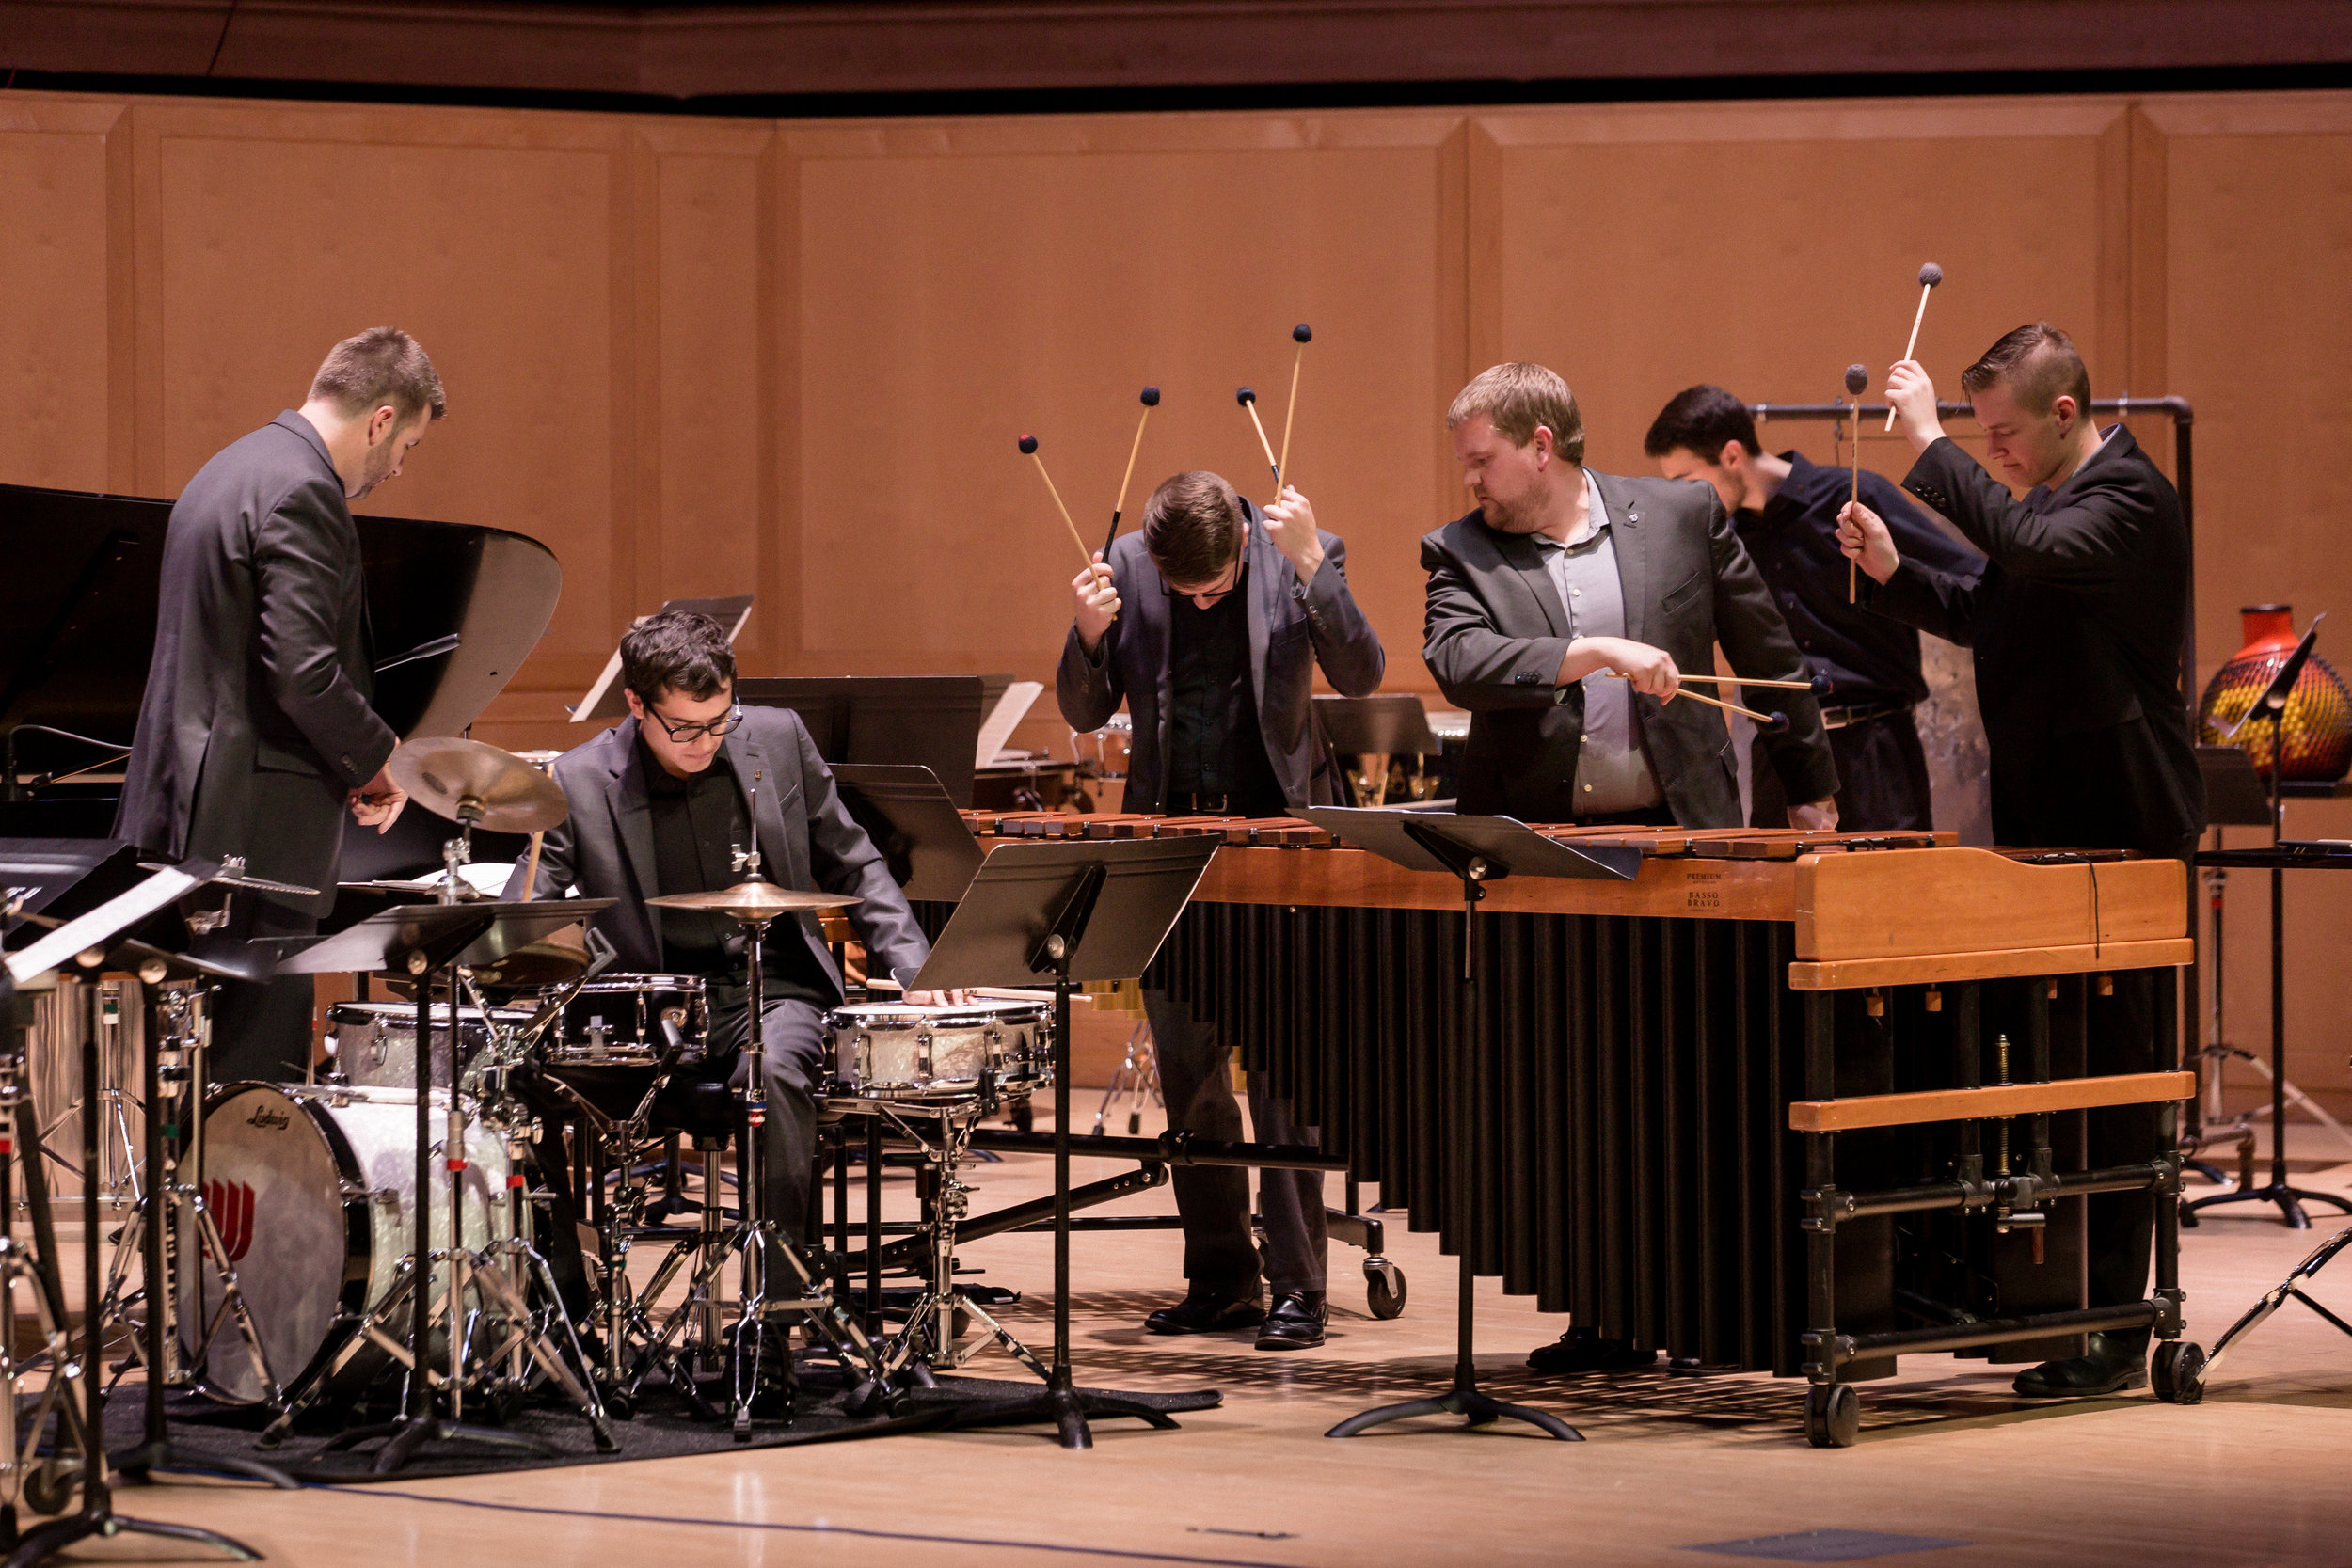 School of Music Percussion Ensemble 1268 edit.JPG